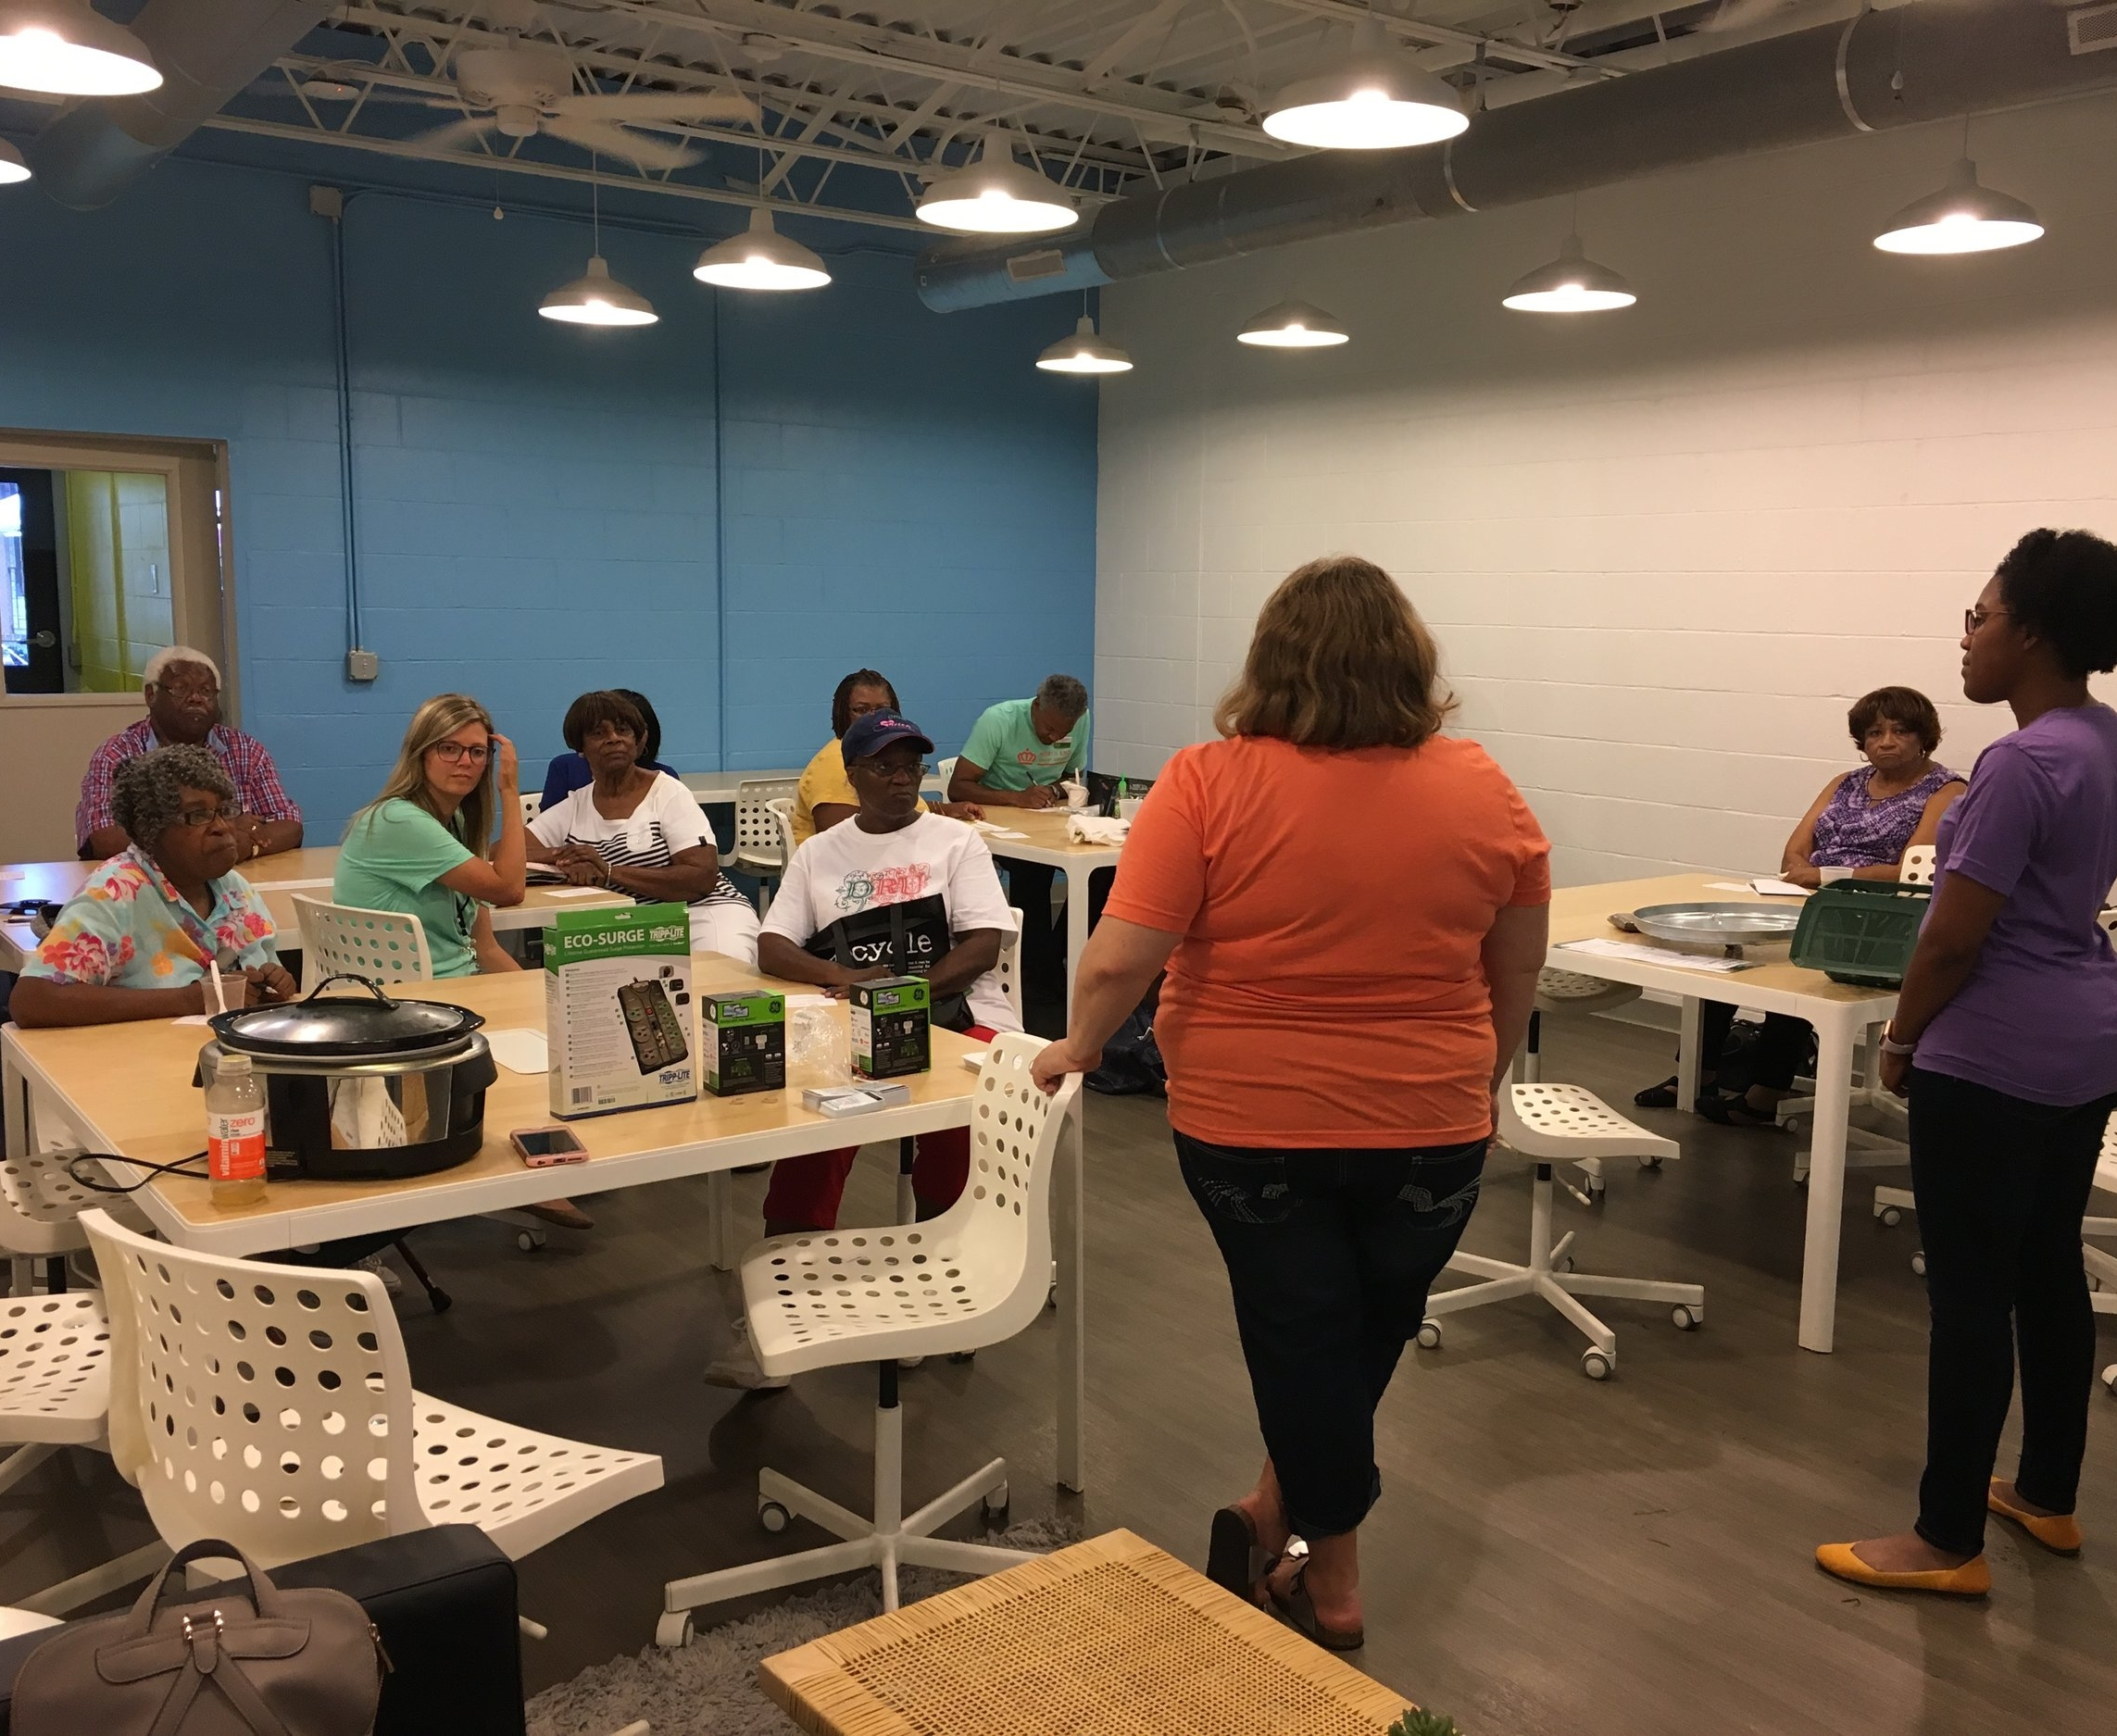 DeAndrea, Founder of RETI, is co-hosting a Smart Homes workshop for the North End Community with the City of Charlotte.